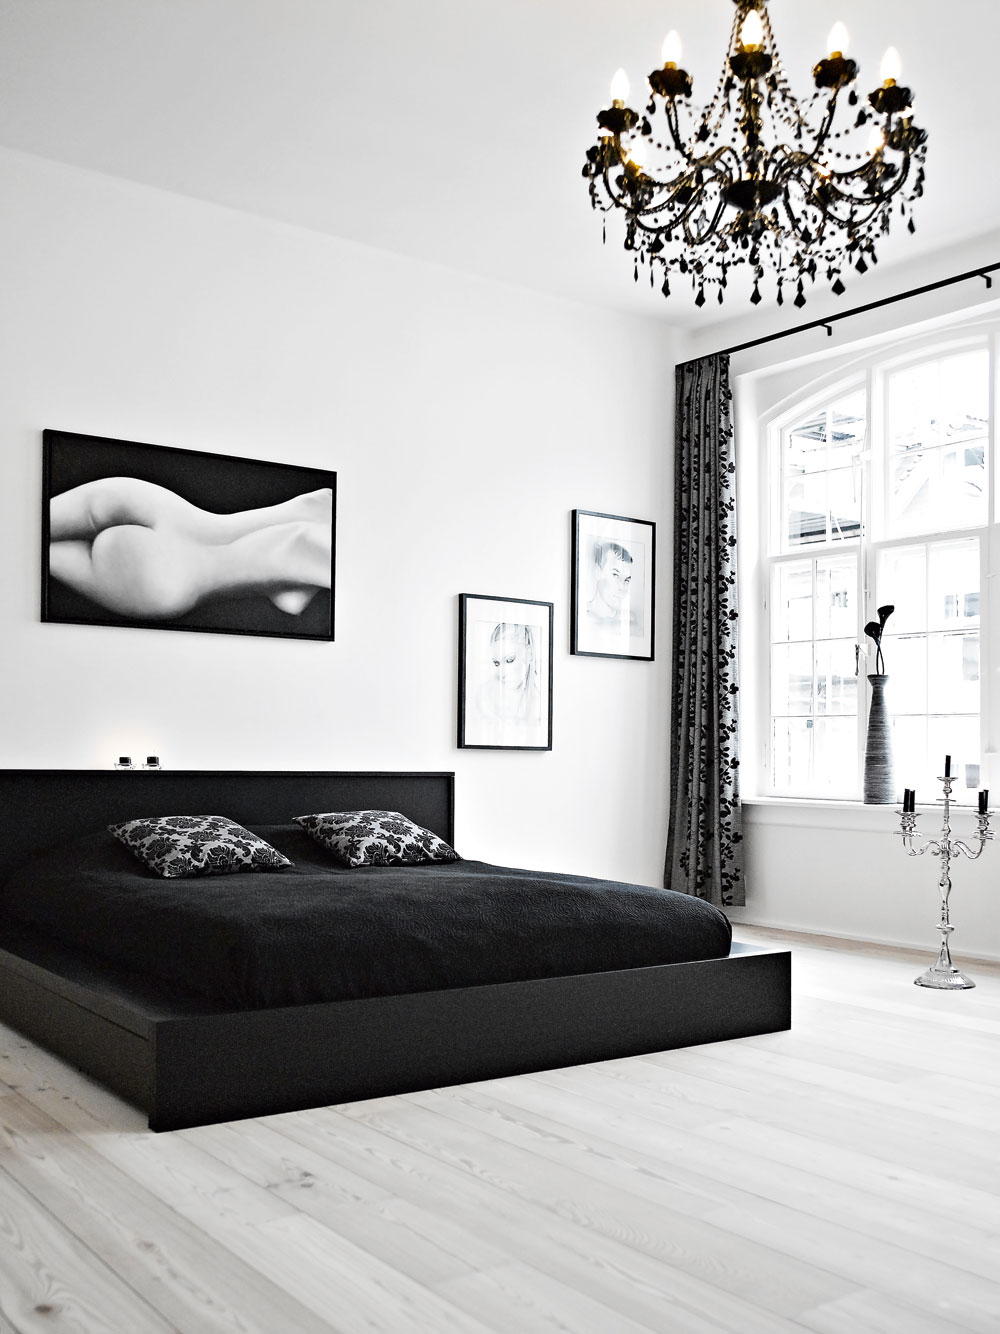 40 beautiful black white bedroom designs - Black And White Bedroom Decor